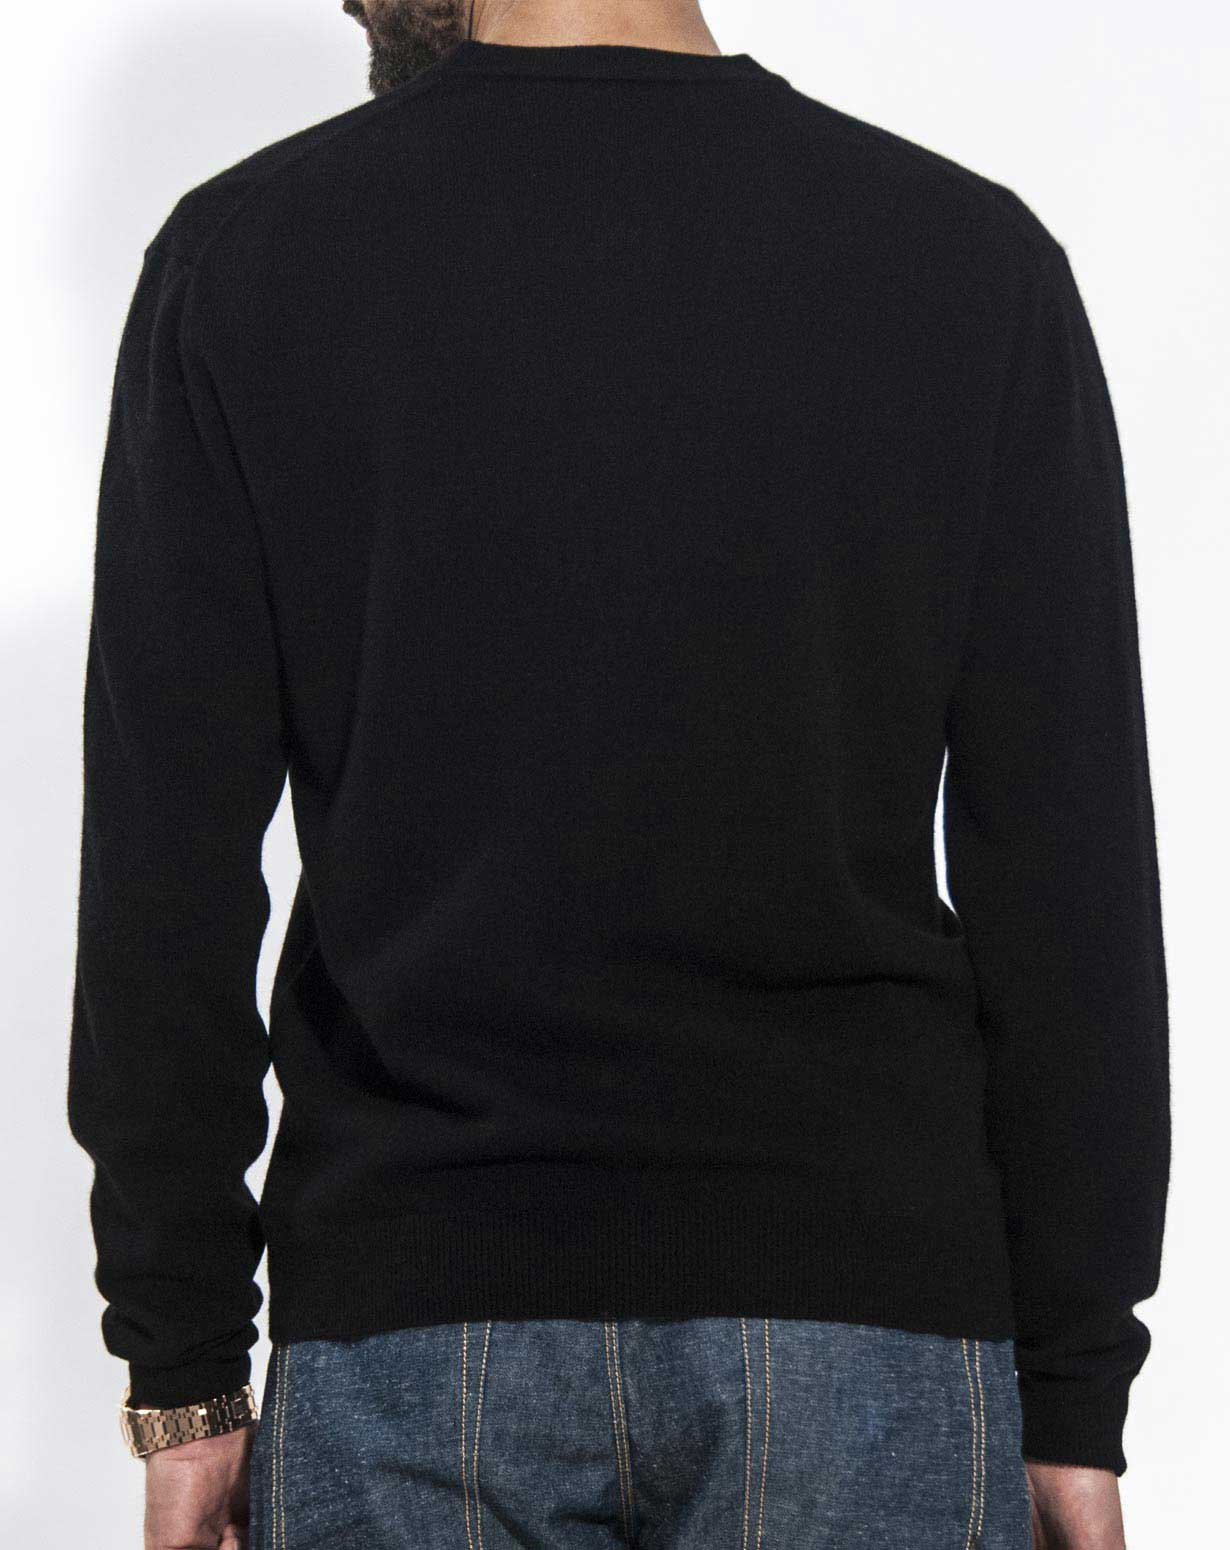 A Men'S Wool Sweater Cost - Cashmere Sweater England